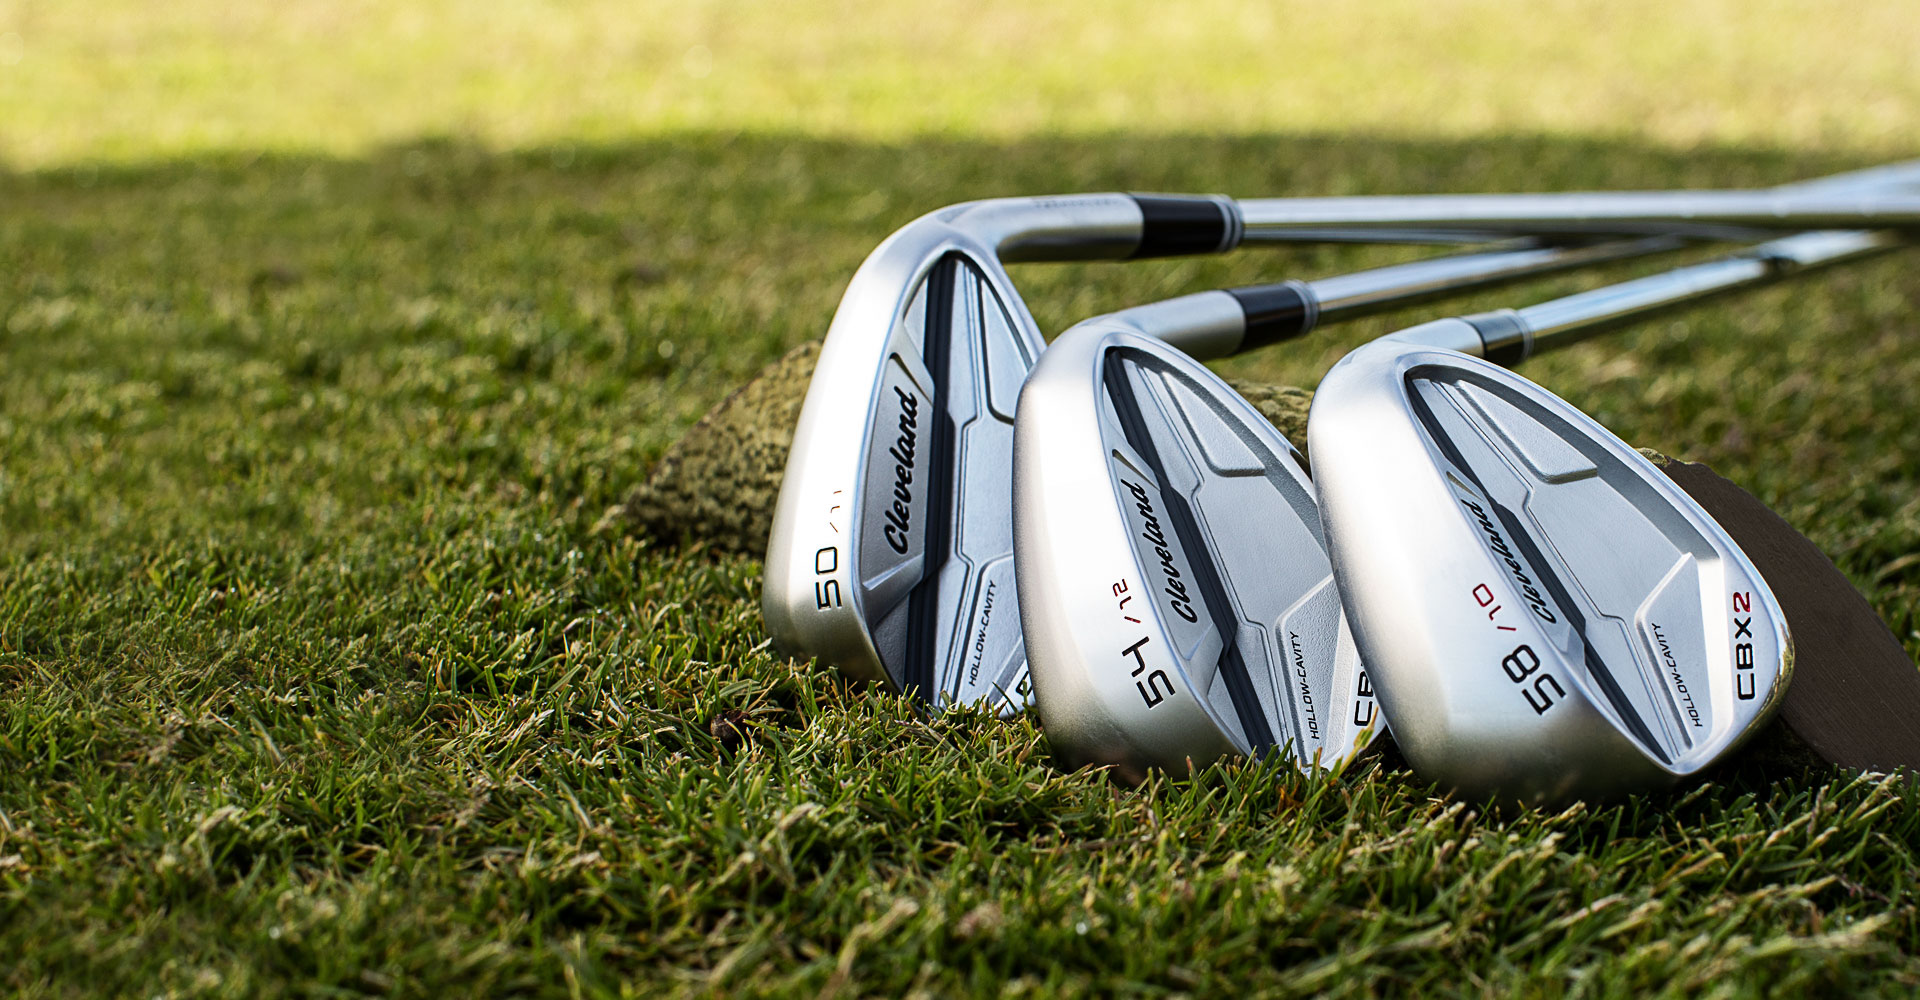 CBX2 3 Wedges on Grass